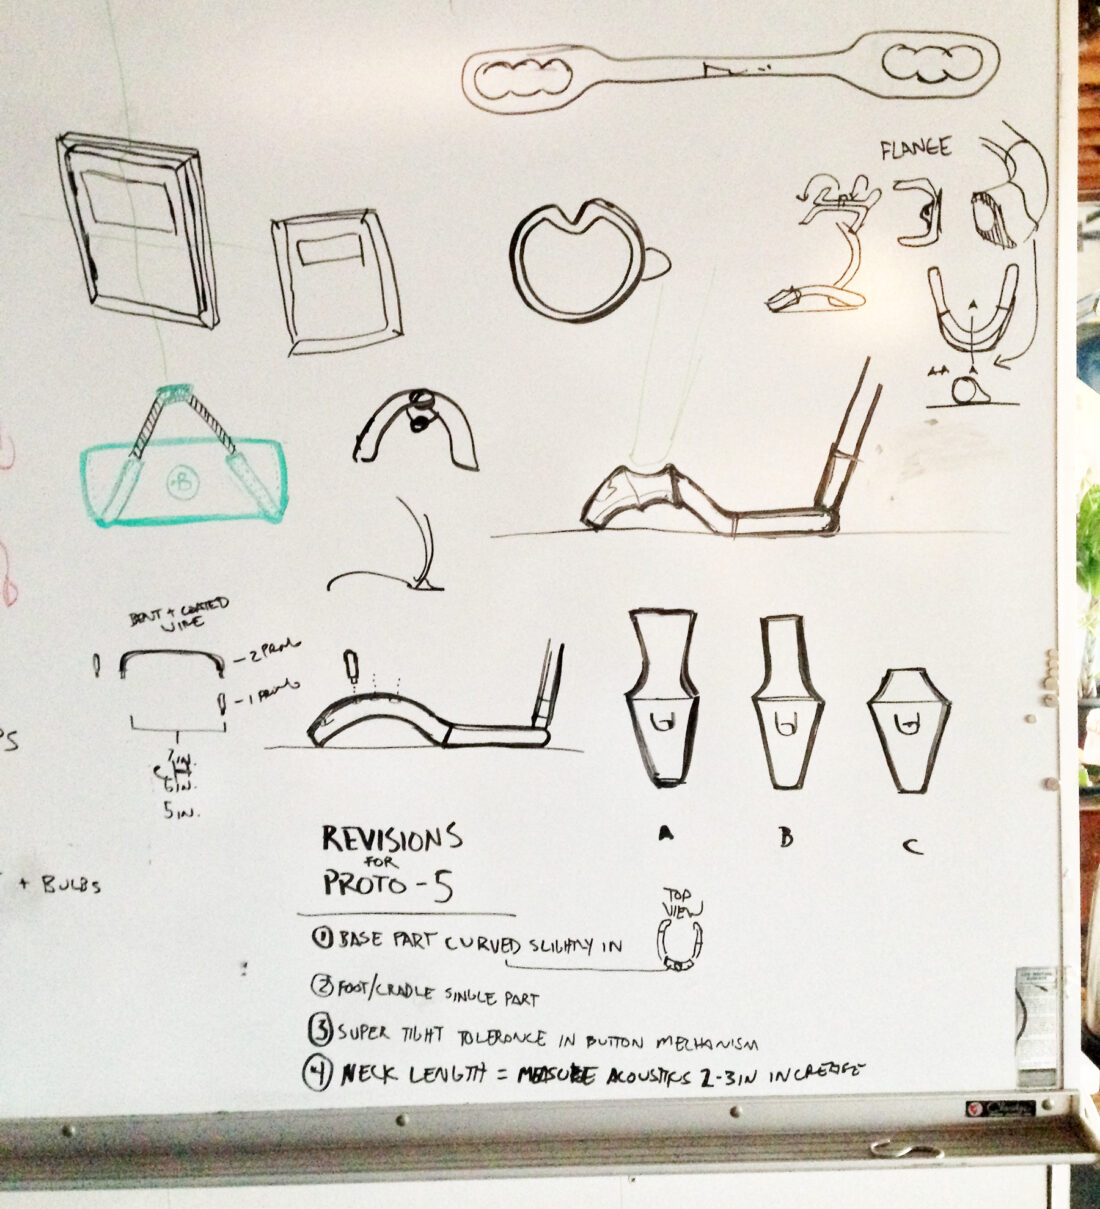 focus group whiteboard session 1